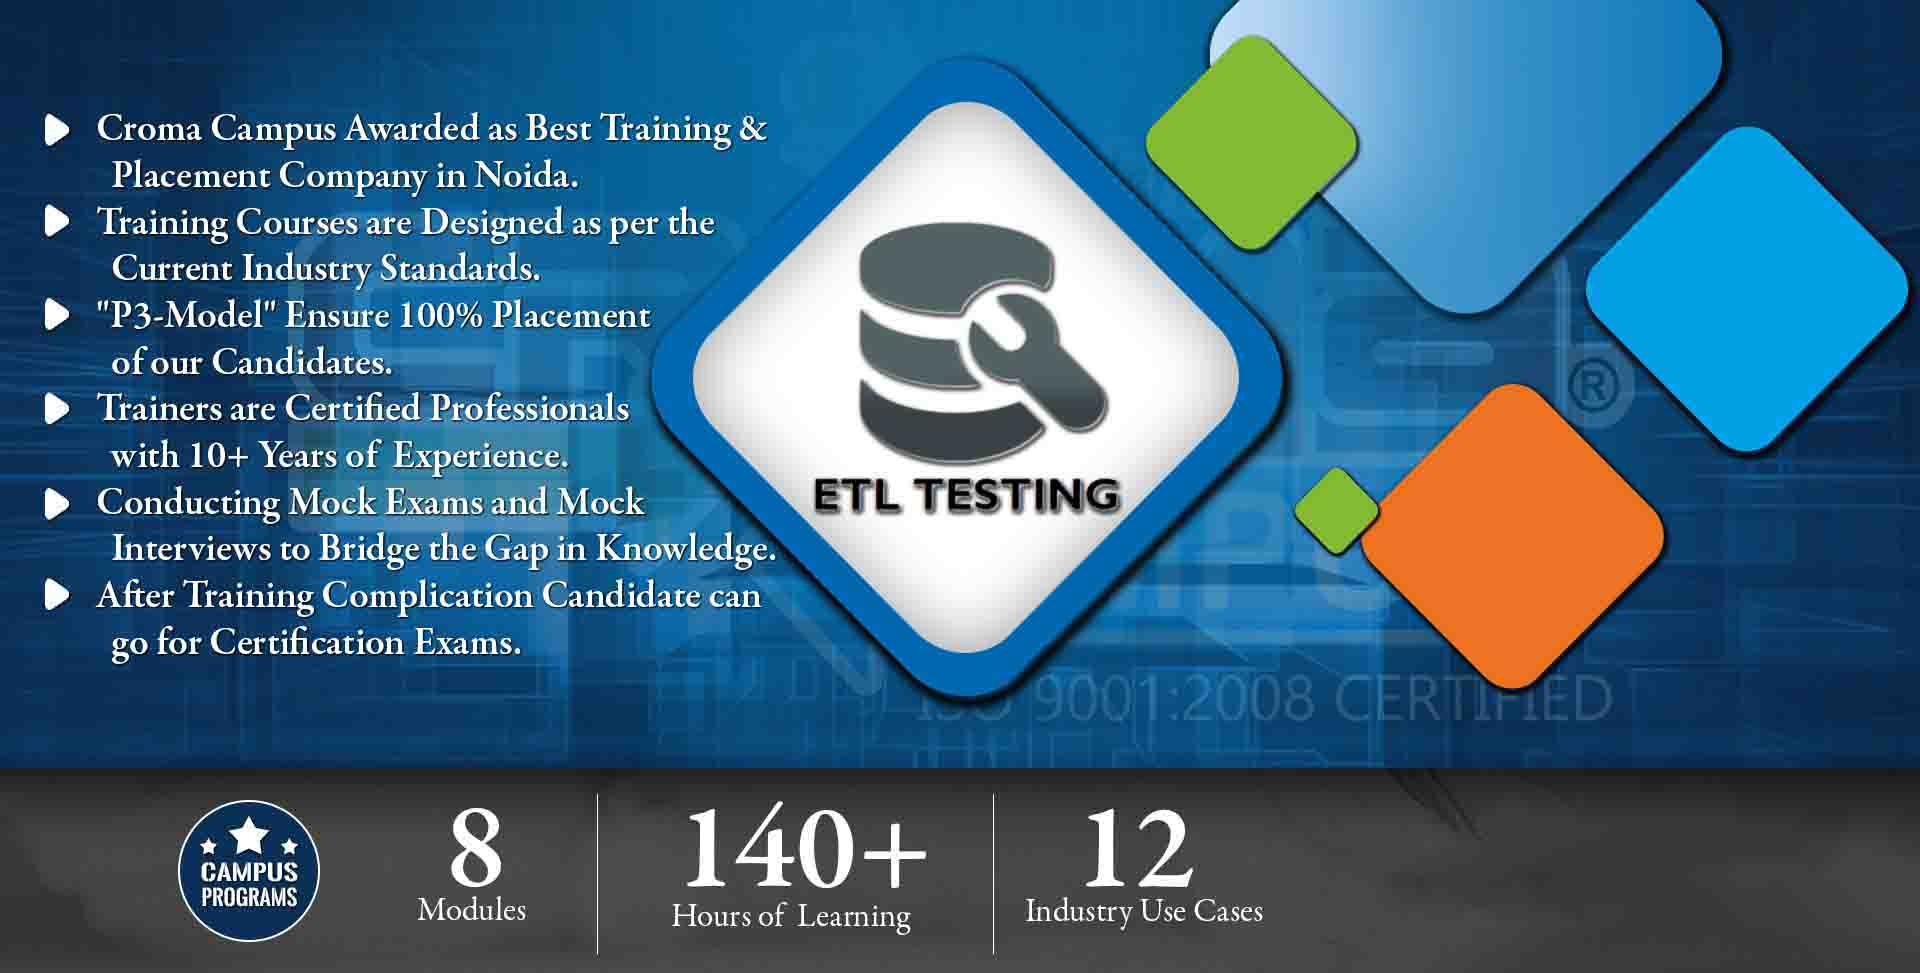 ETL Testing Training in Noida- Croma Campus